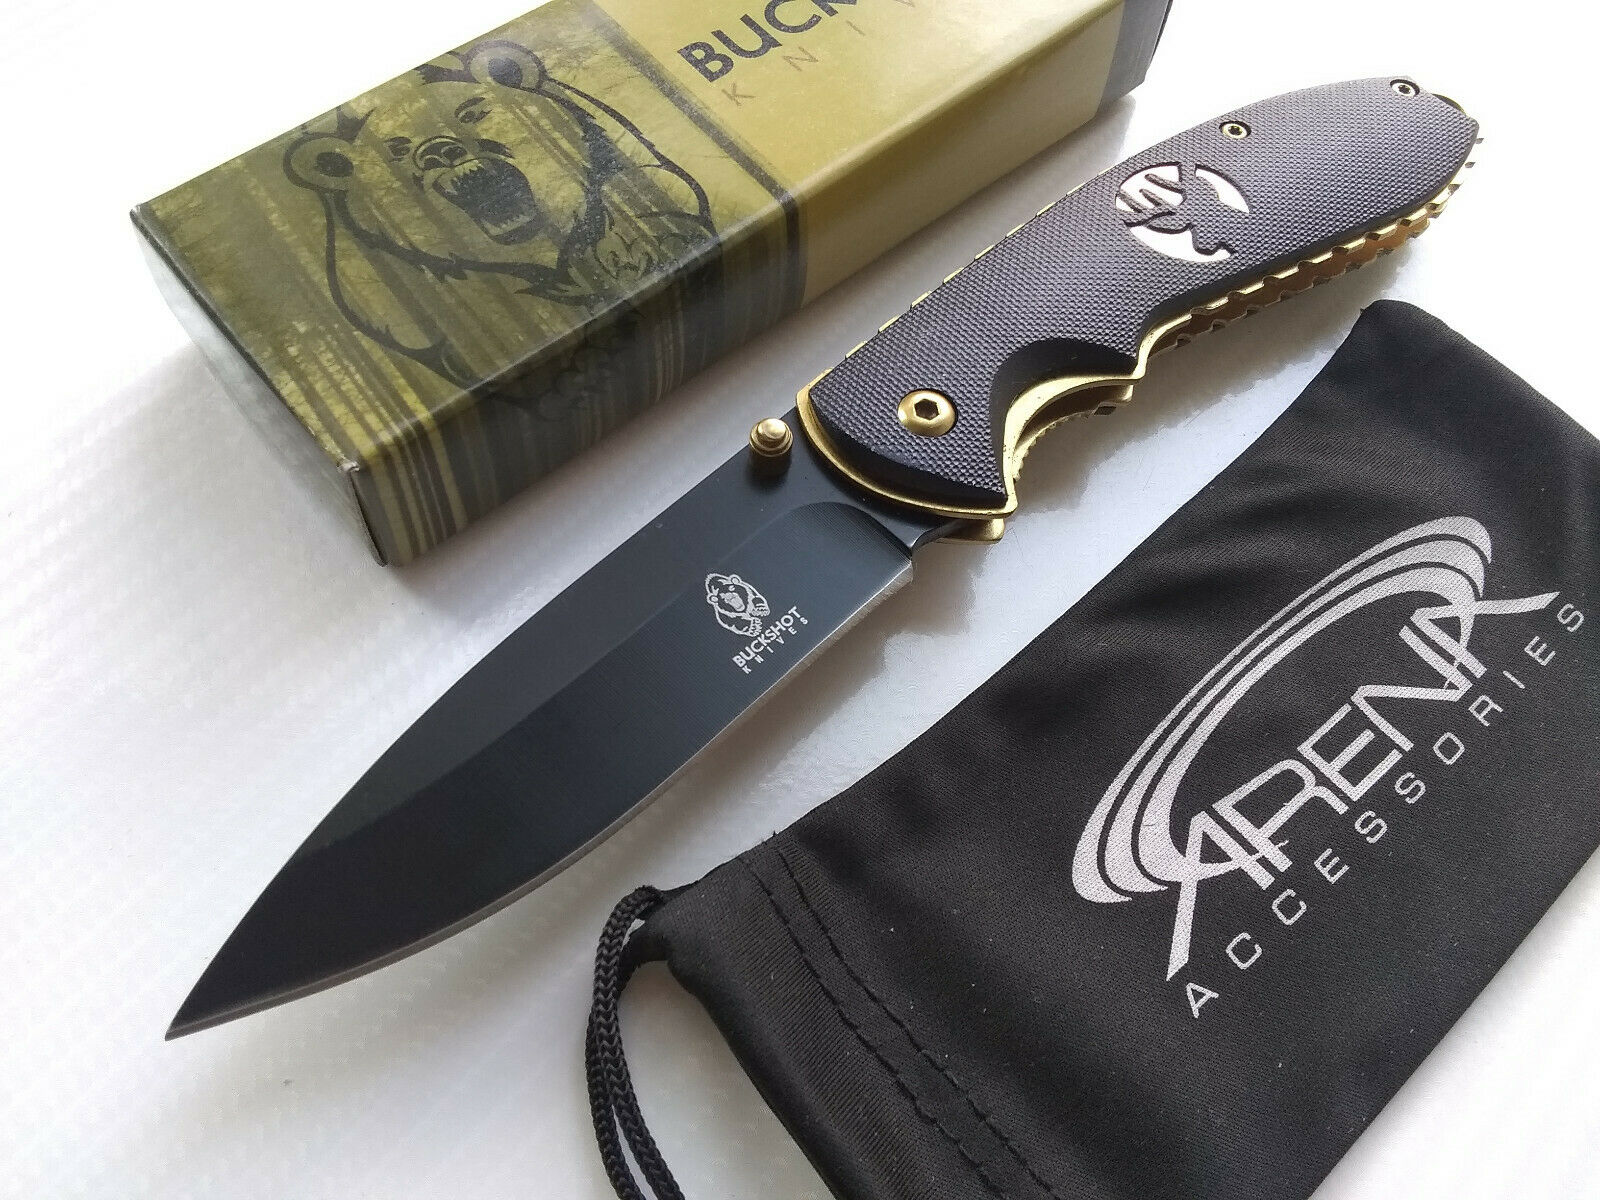 Buckshot Deer Buck Spring Assisted Pocket Knife Flipper Gold Ti Liners & Black Blade EDC